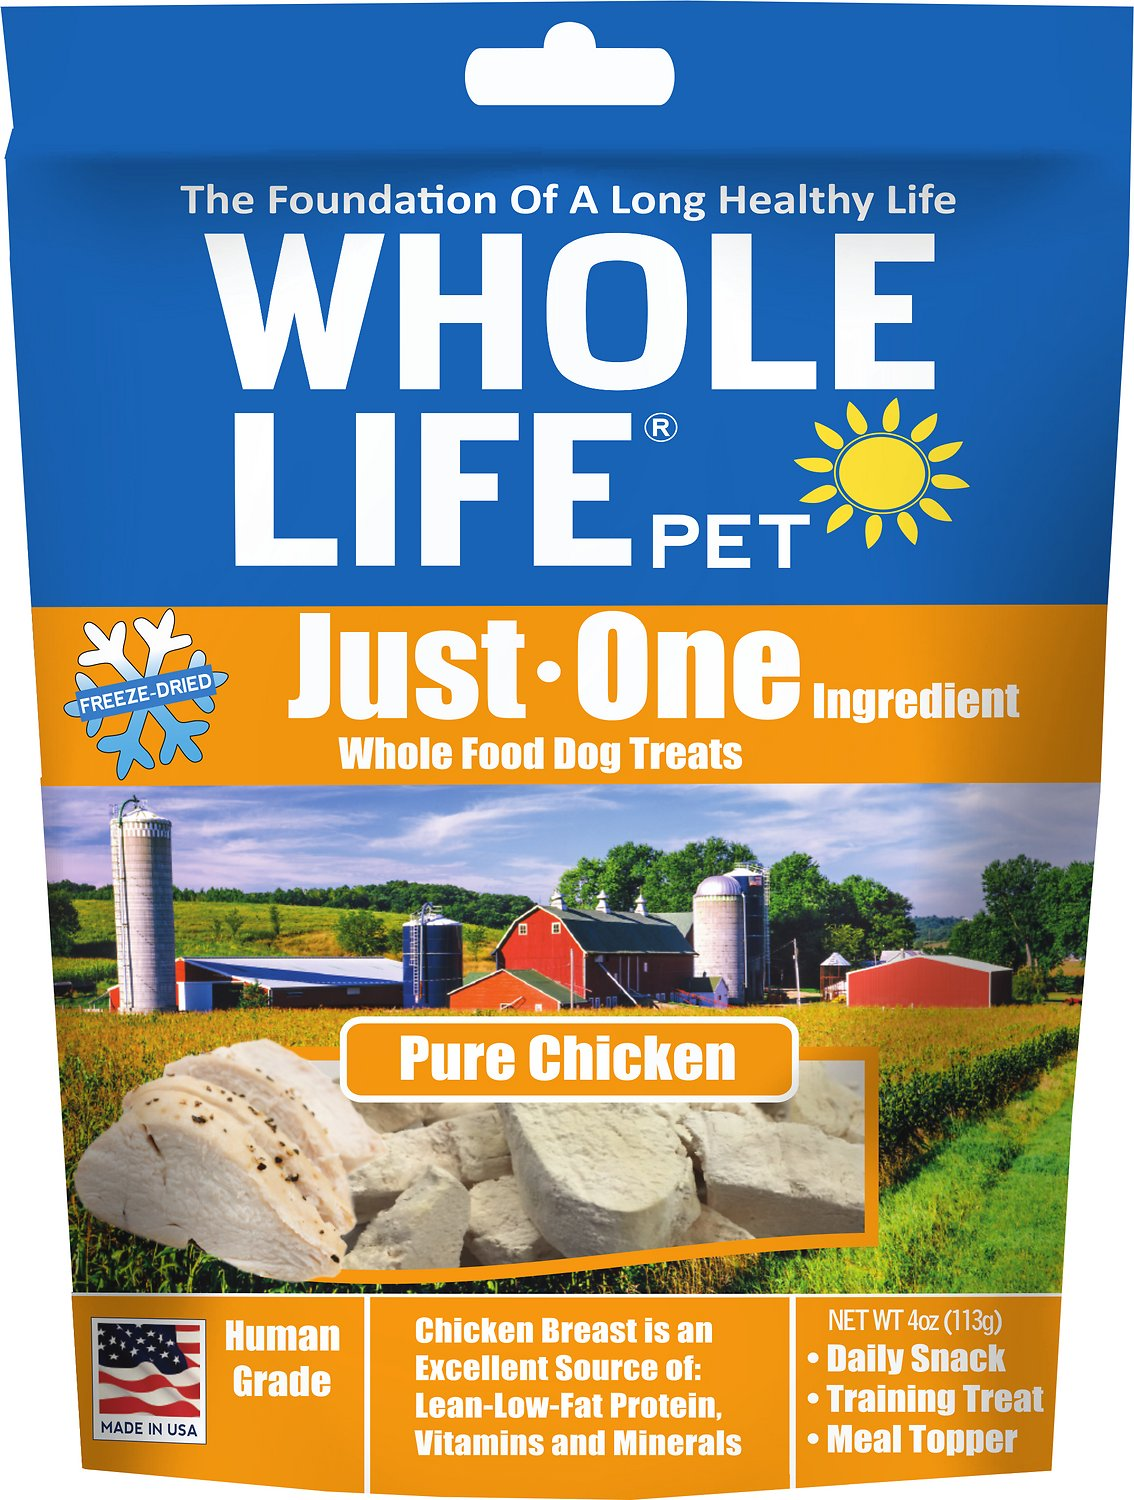 Whole Life Just One Ingredient Pure Chicken Breast Freeze-Dried Dog Treats, 4-oz bag (Weights: 4ounces) Image